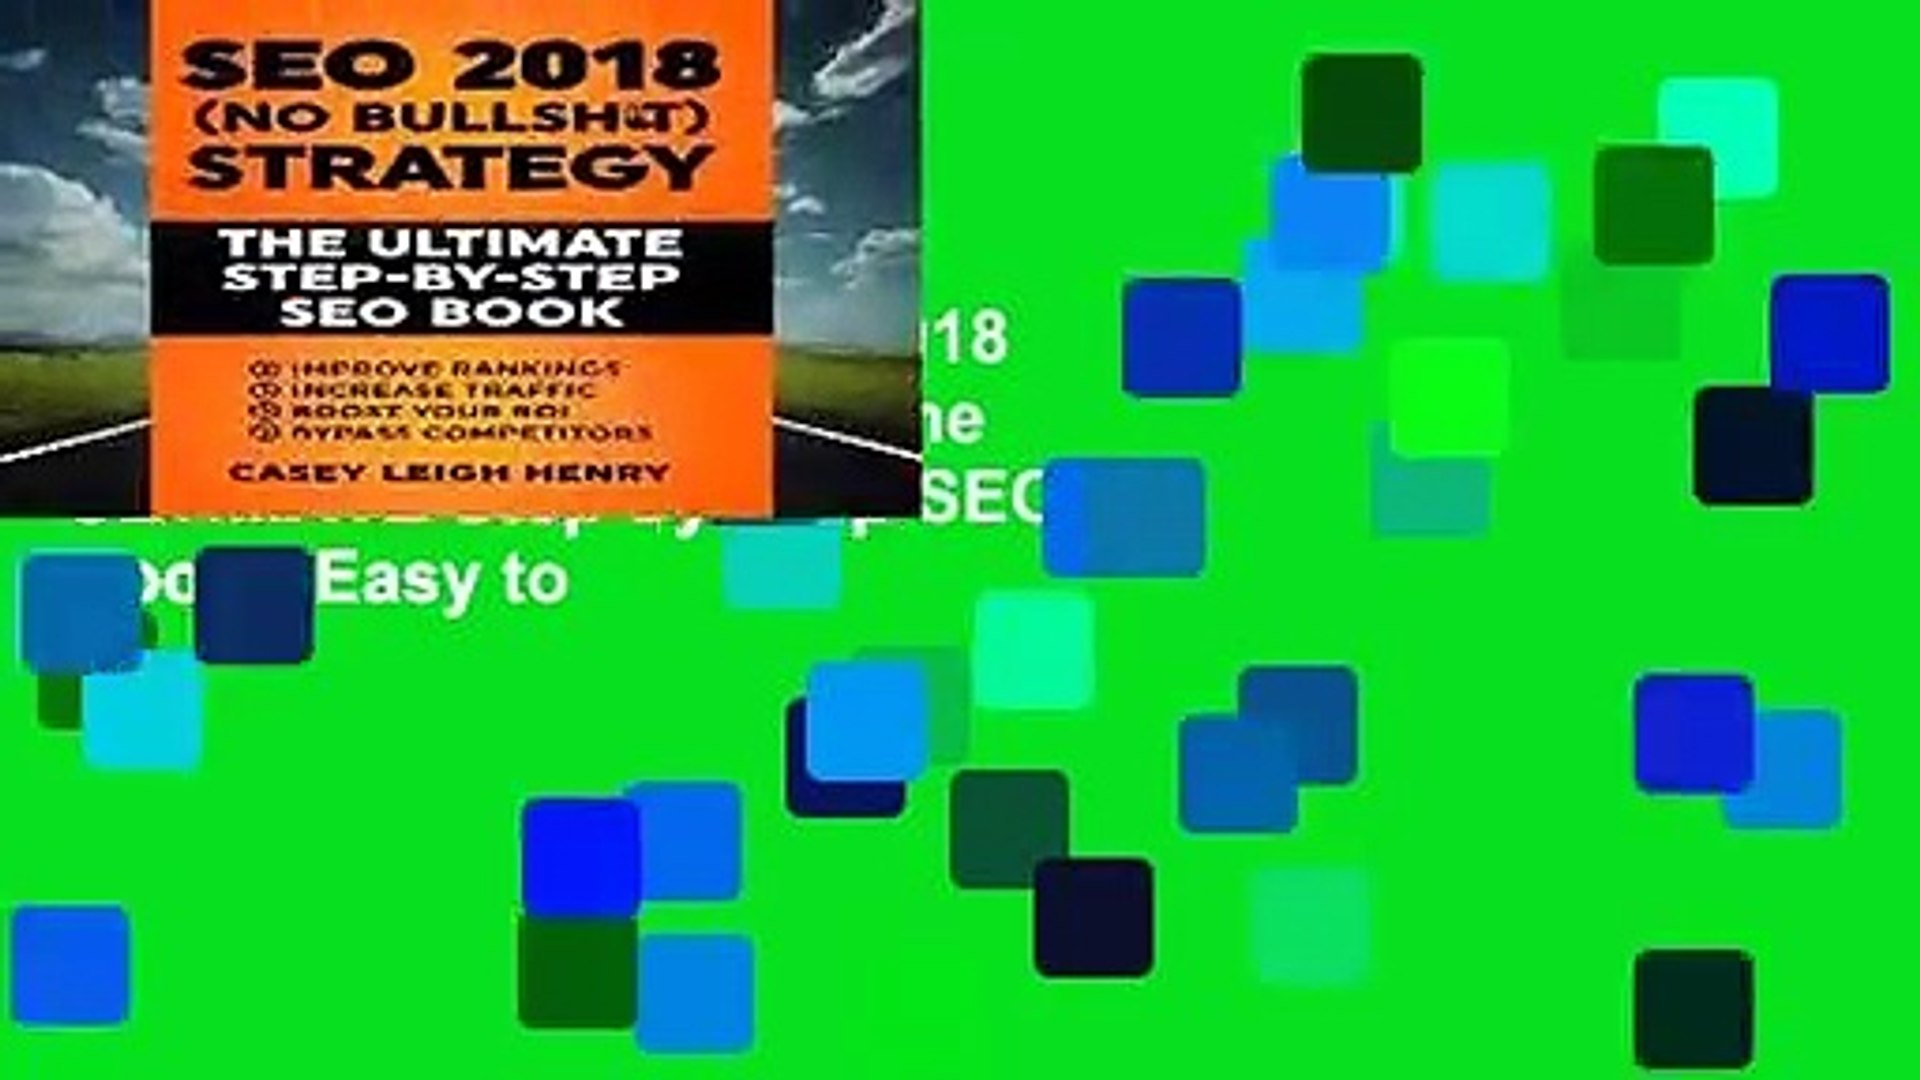 [BEST SELLING]  SEO 2018 (No-Bullsh*t) Strategy: The ULTIMATE Step-by-Step SEO Book: (Easy to